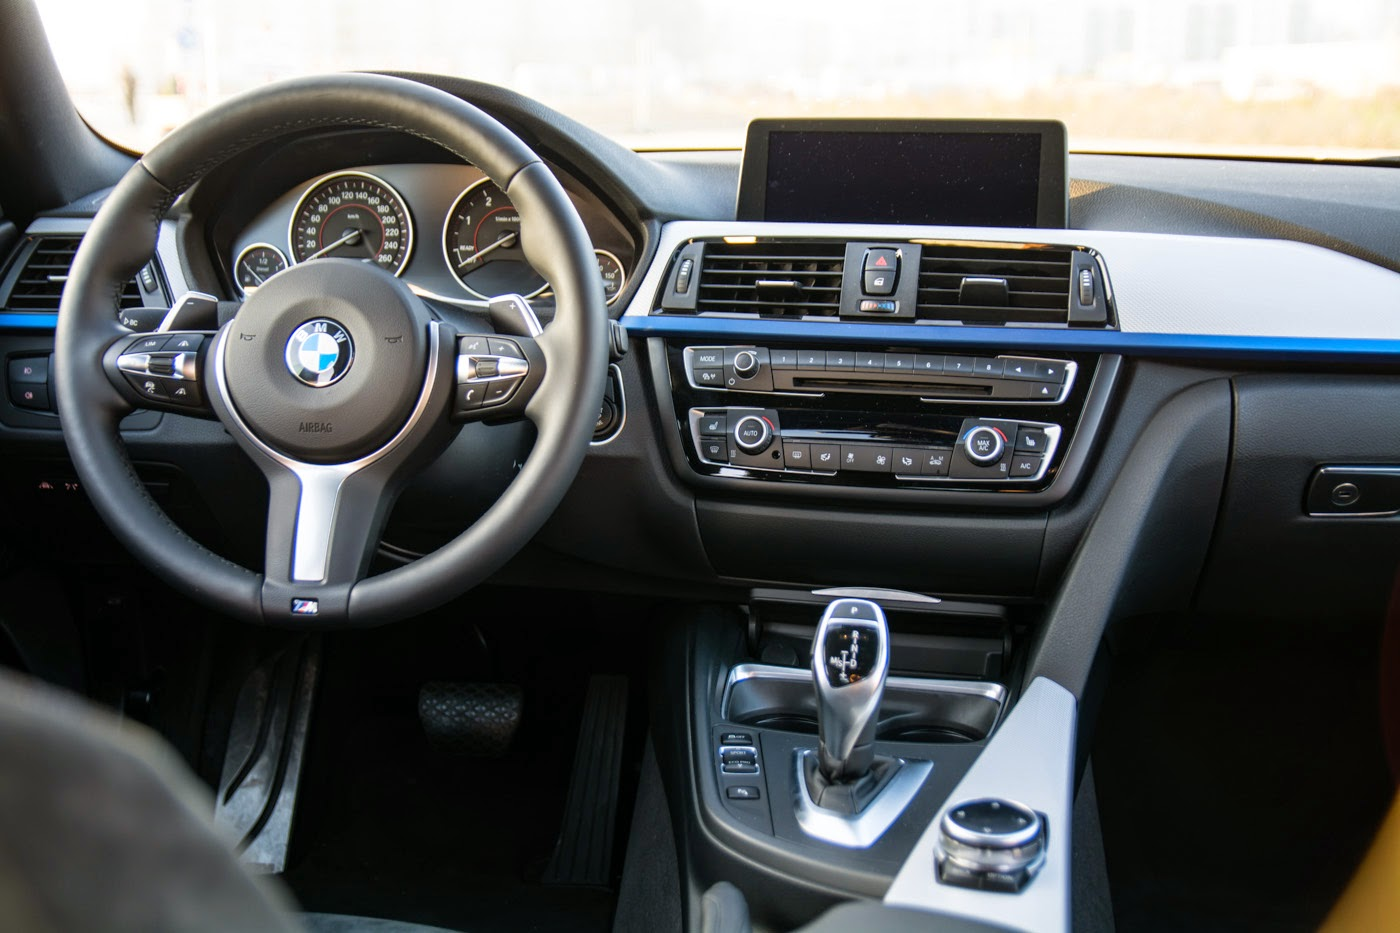 bmw 430d xdrive gran coup wenn die kamera schmutzig ist ist alles aus. Black Bedroom Furniture Sets. Home Design Ideas